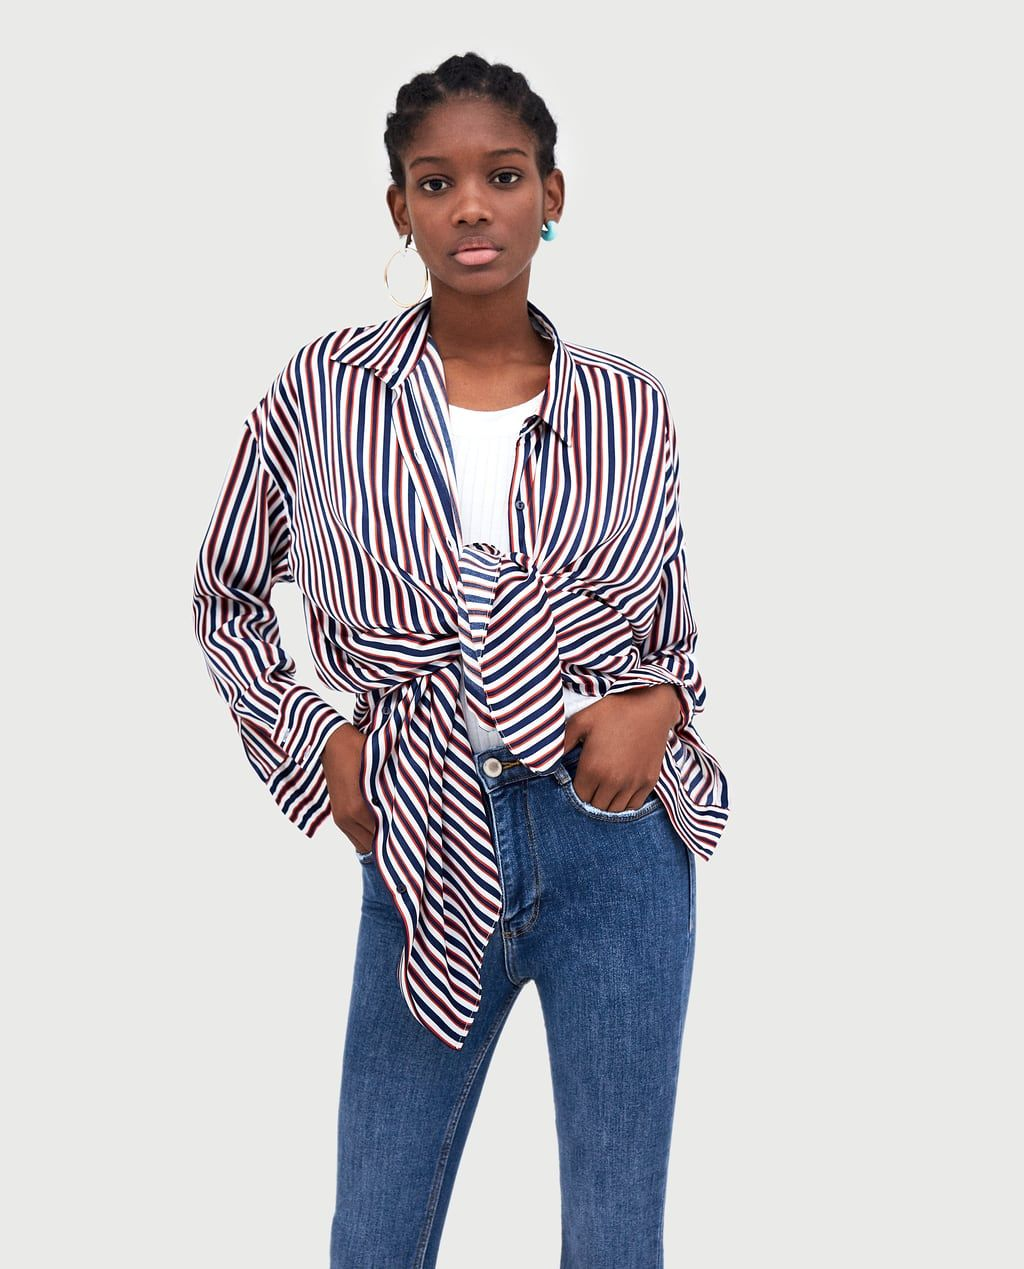 022d744358 Women's Jeans | New Collection Online | ZARA United States ...